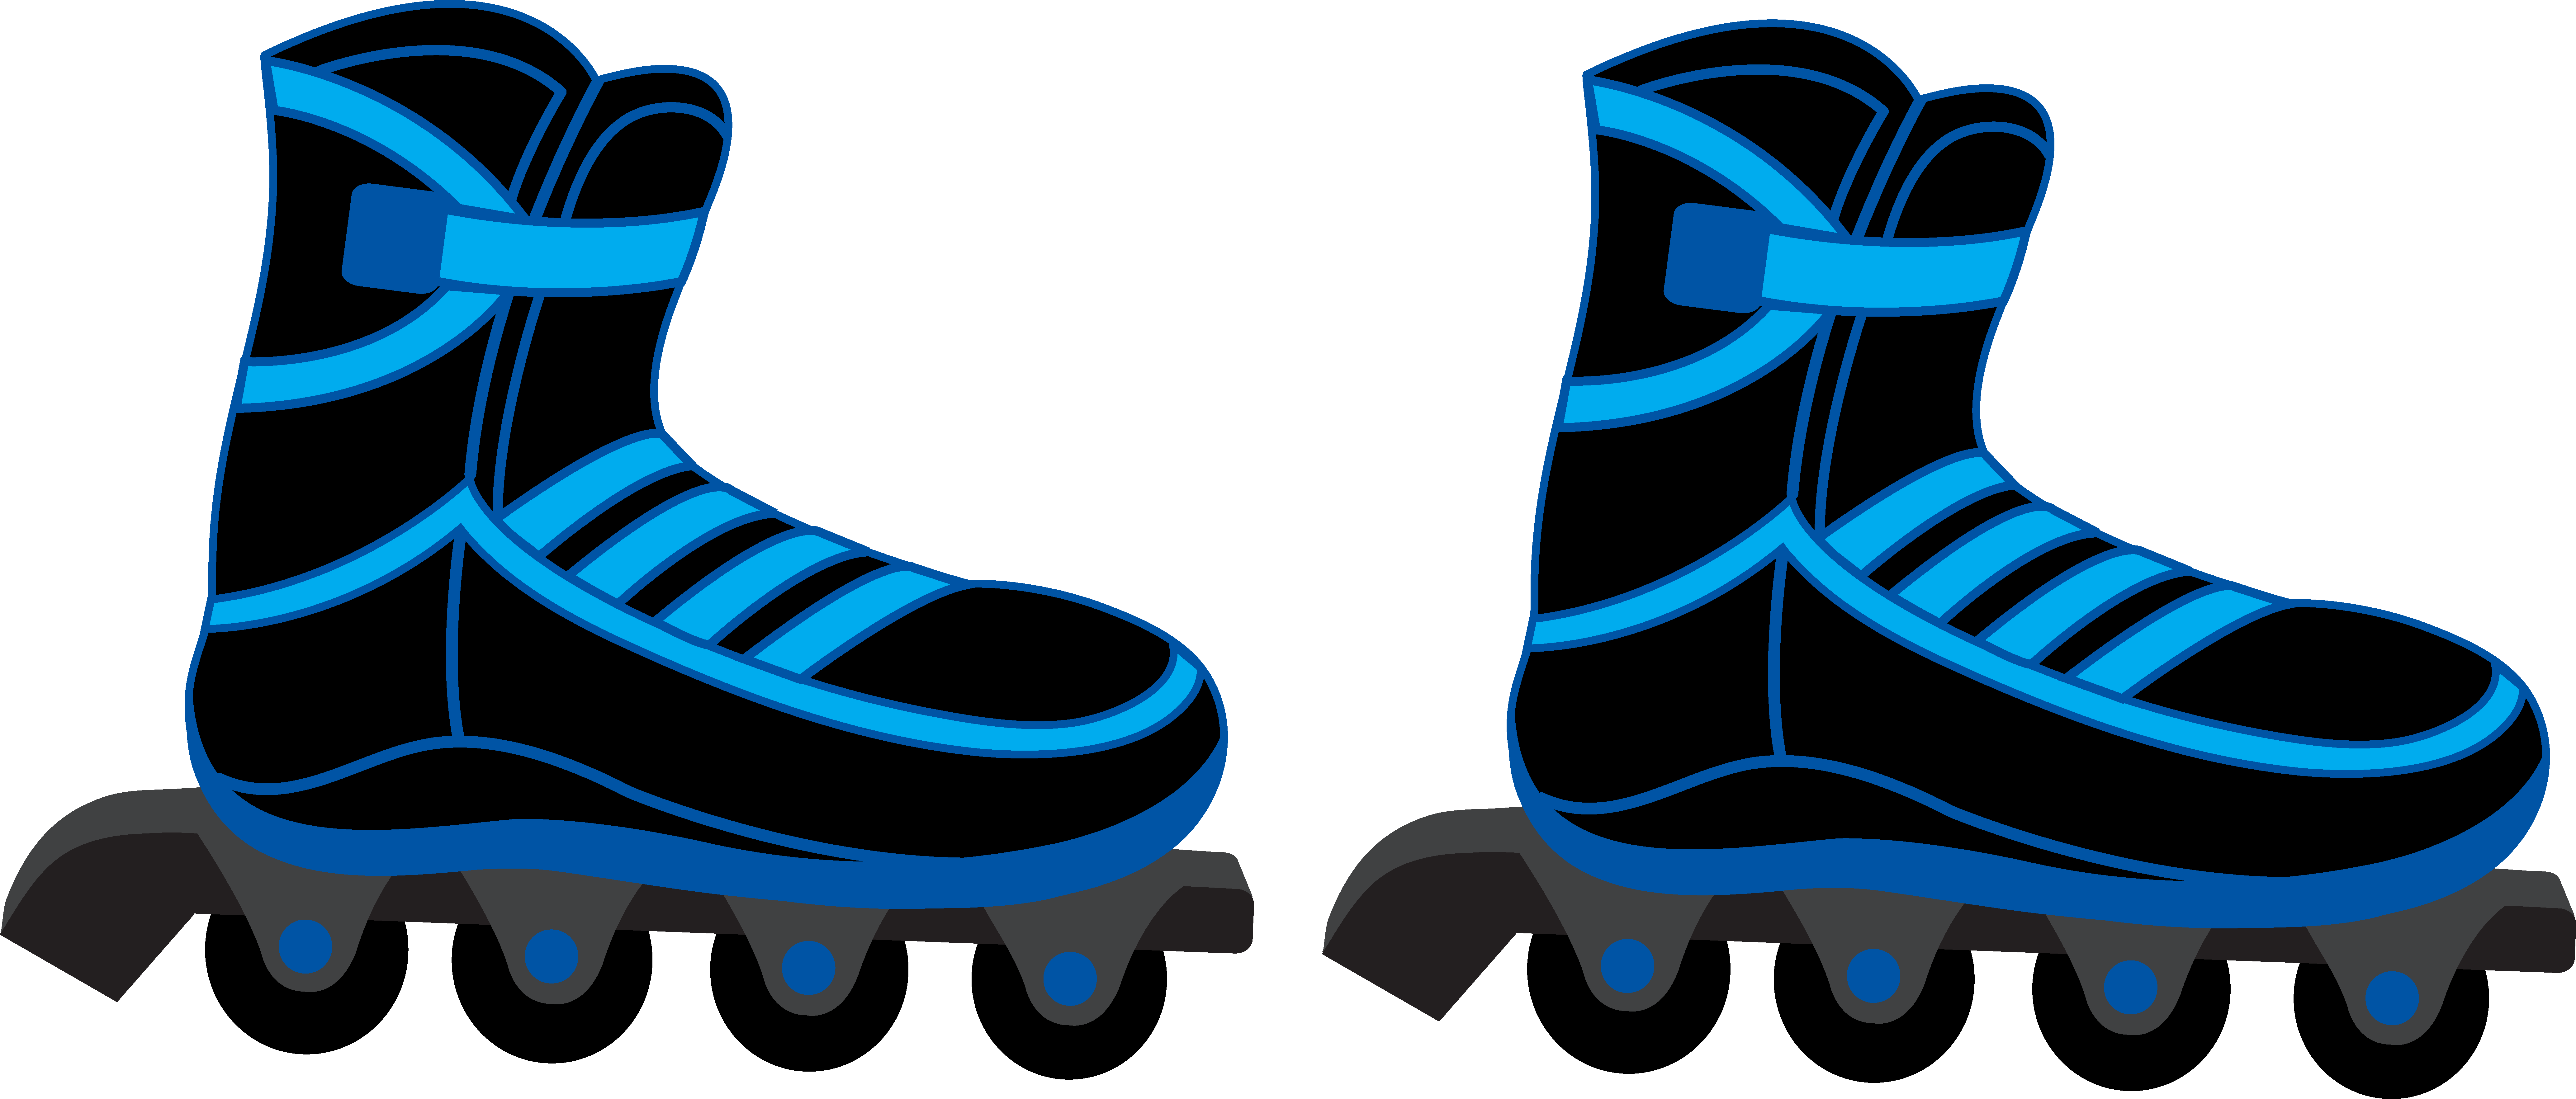 Clipart rollerblades clip royalty free stock Cool Blue and Black Rollerblades - Free Clip Art clip royalty free stock